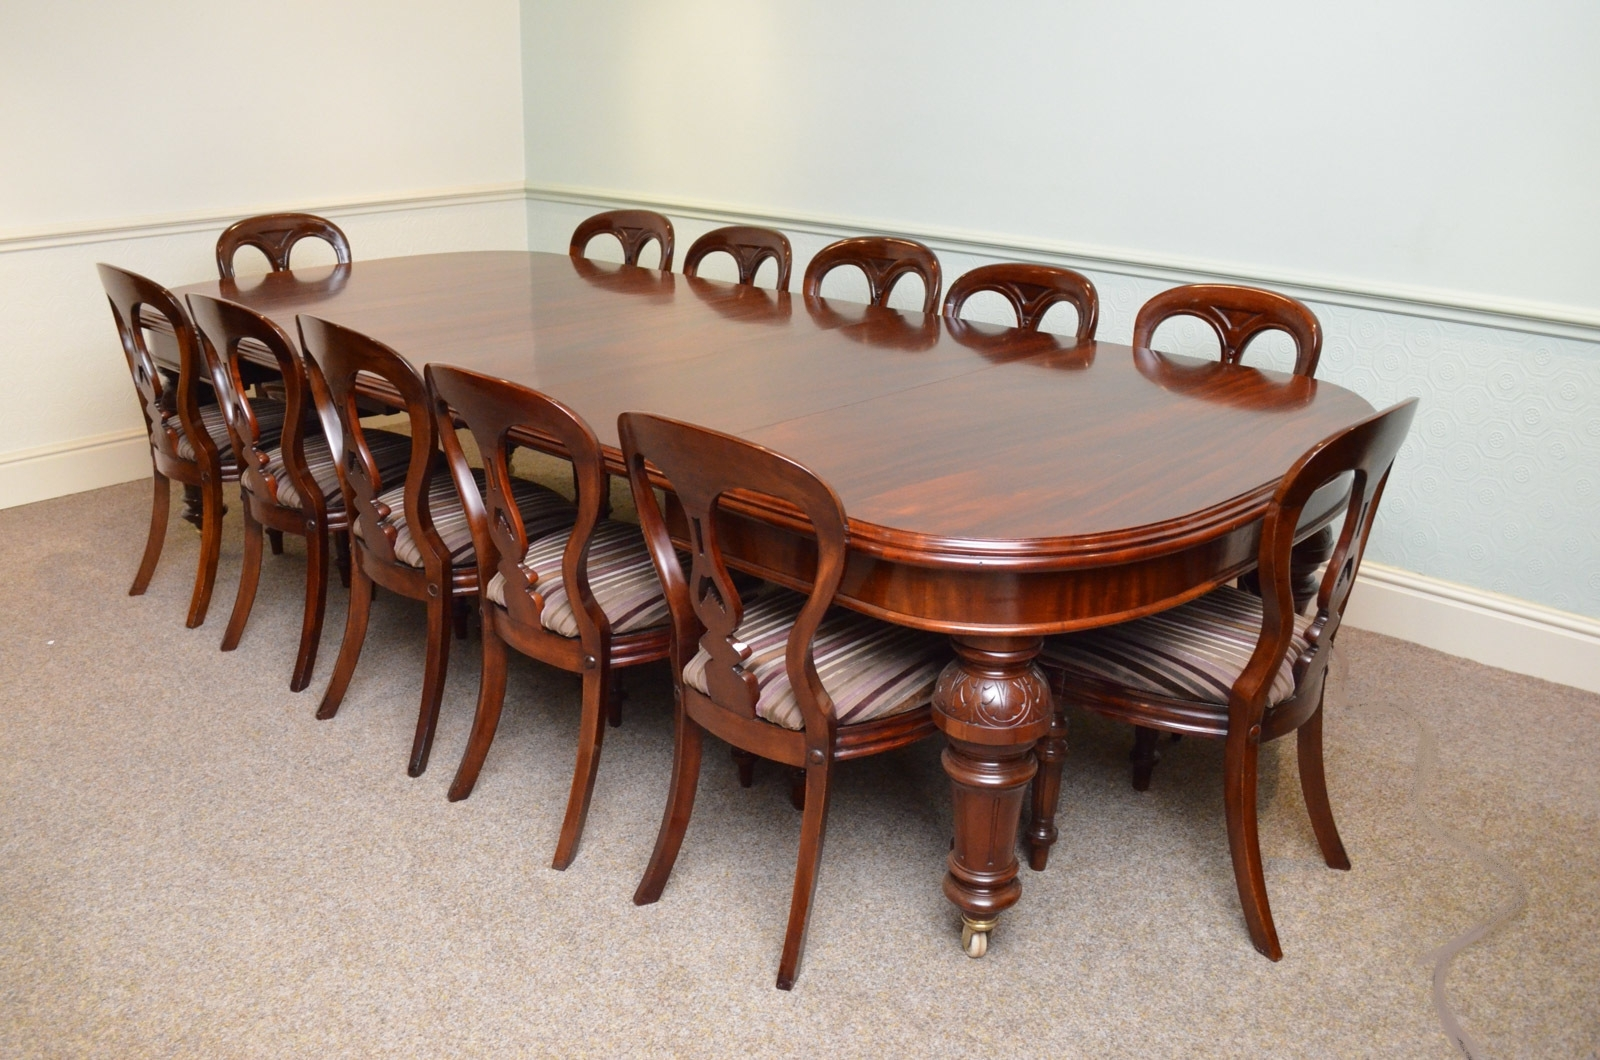 Mahogany Extending Dining Tables And Chairs With Regard To Fashionable Fine Quality Victorian Mahogany Extending Dining Table (Gallery 24 of 25)